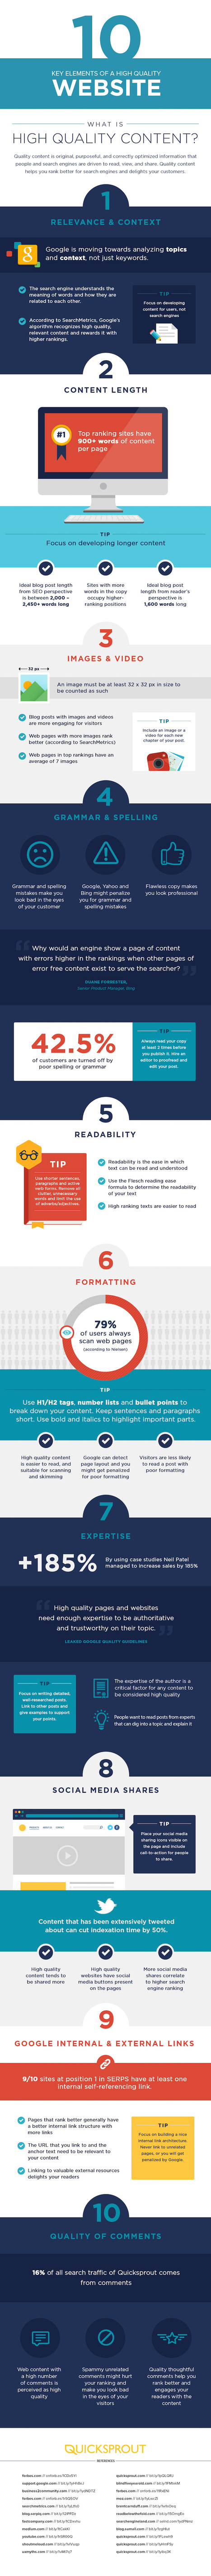 The 10 Key Elements of a High Quality Website | INFOGRAPHICS | Scoop.it